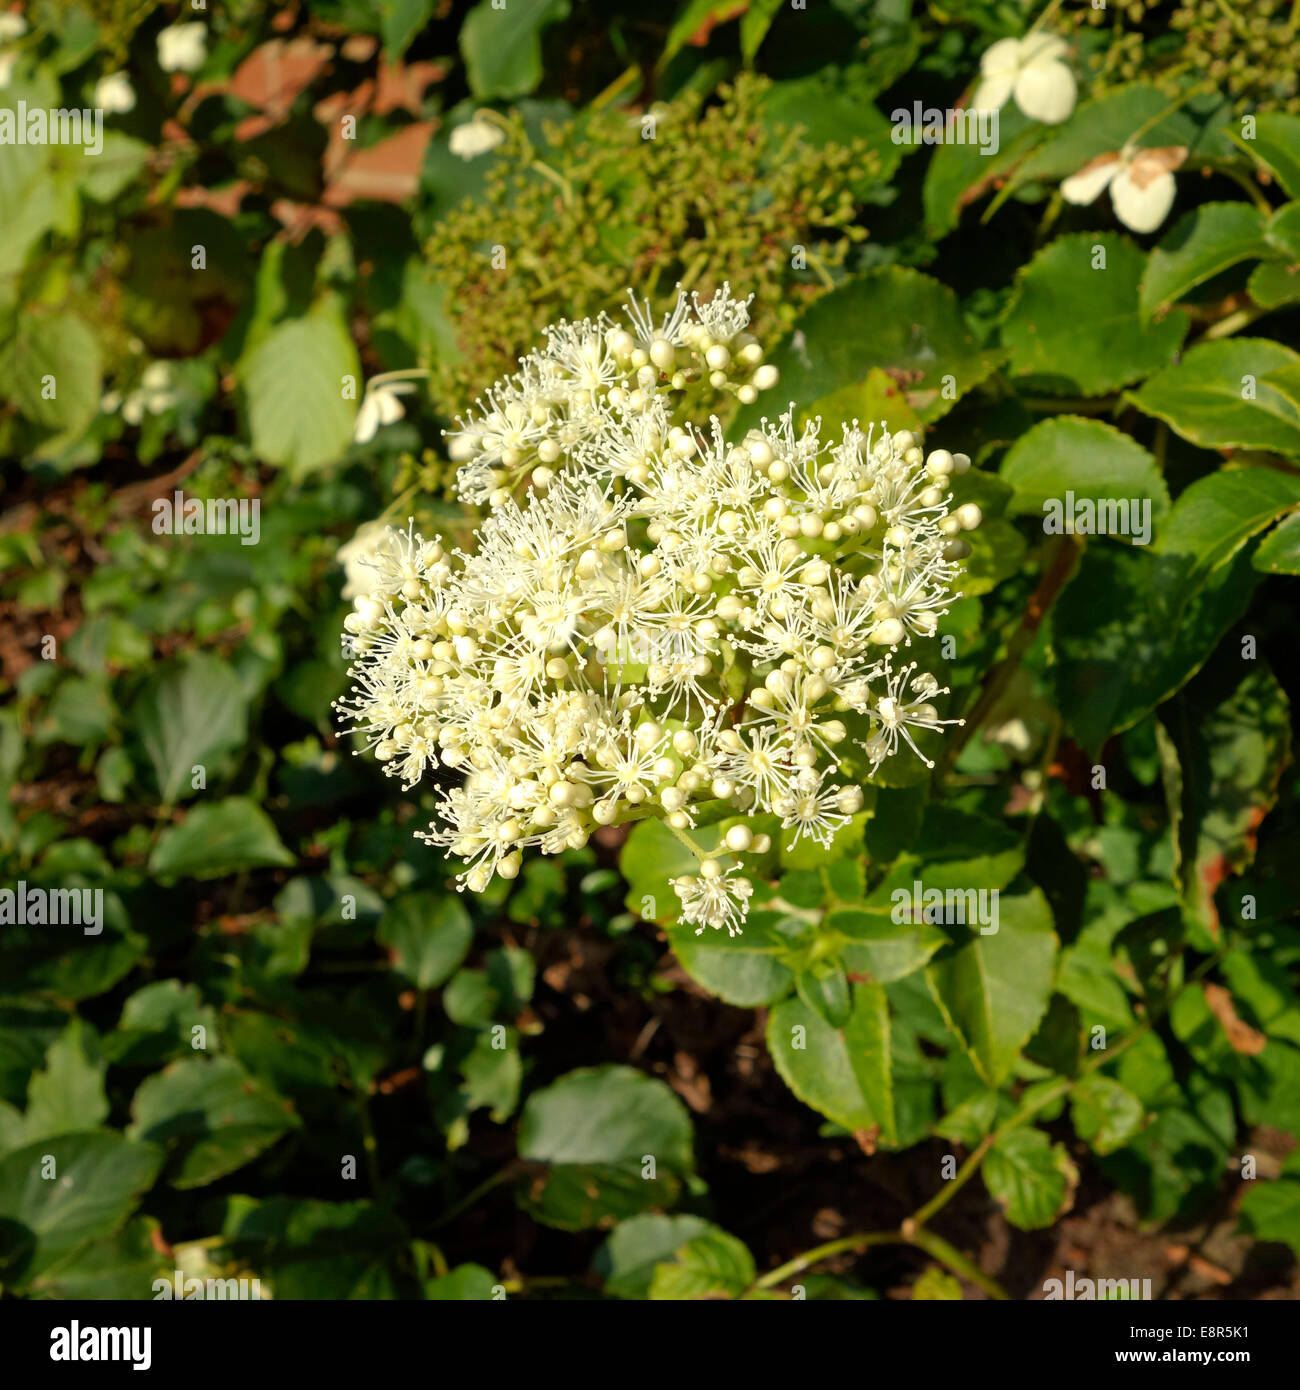 Hydrangea anomala subspecies petiolaris, commonly known as Climbing Hydrangea in Flower - Stock Image